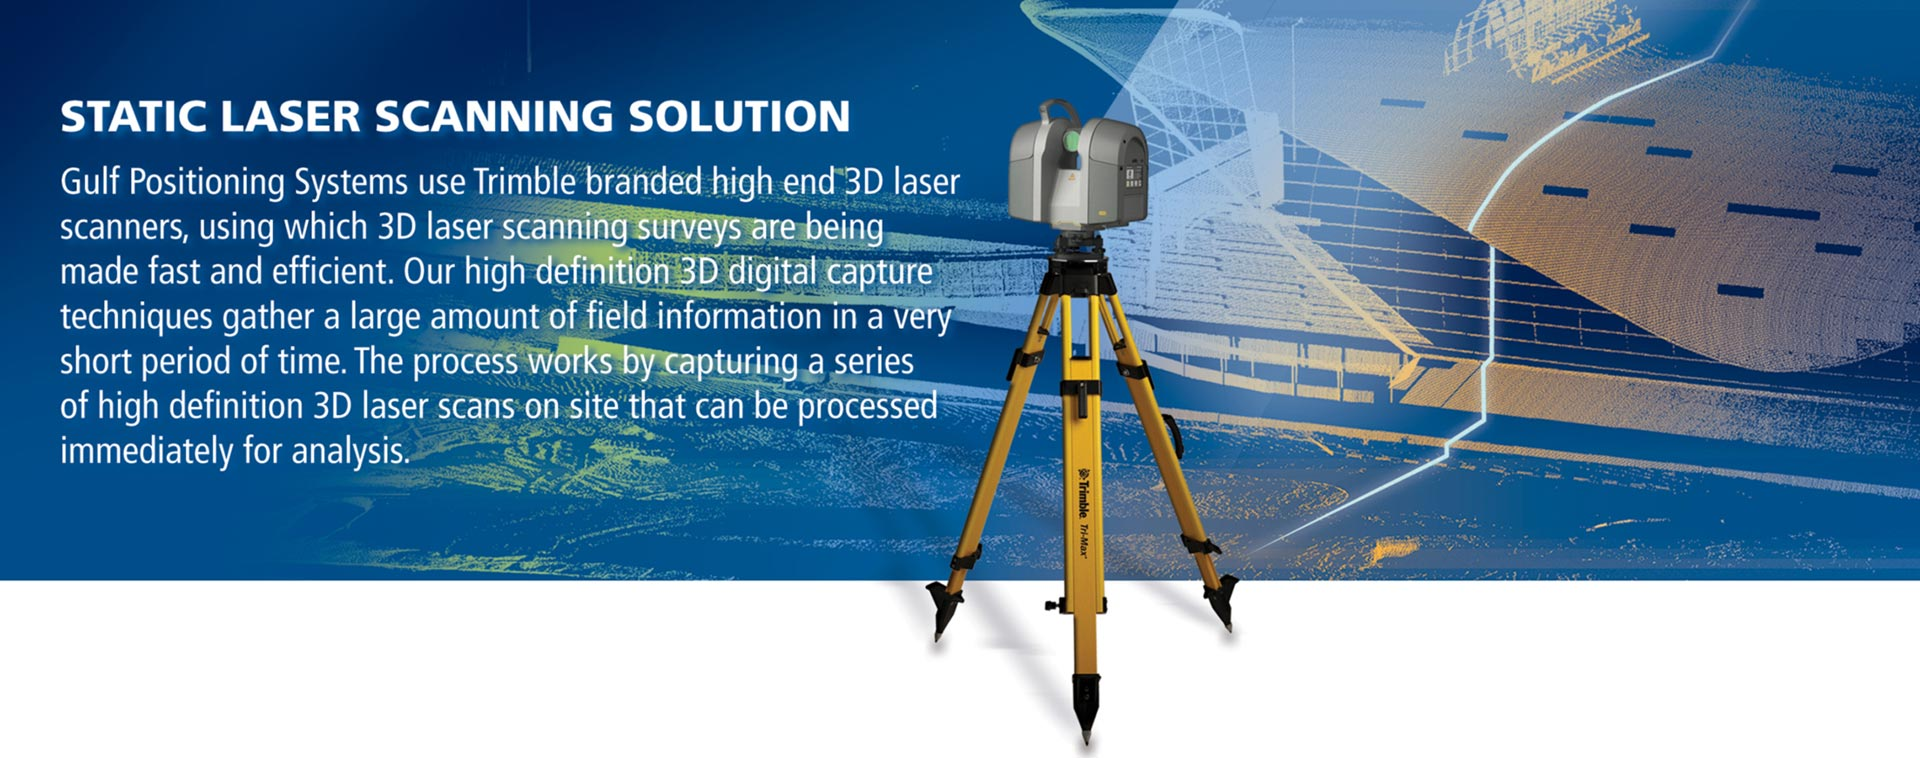 Static Laser Scanning Solution